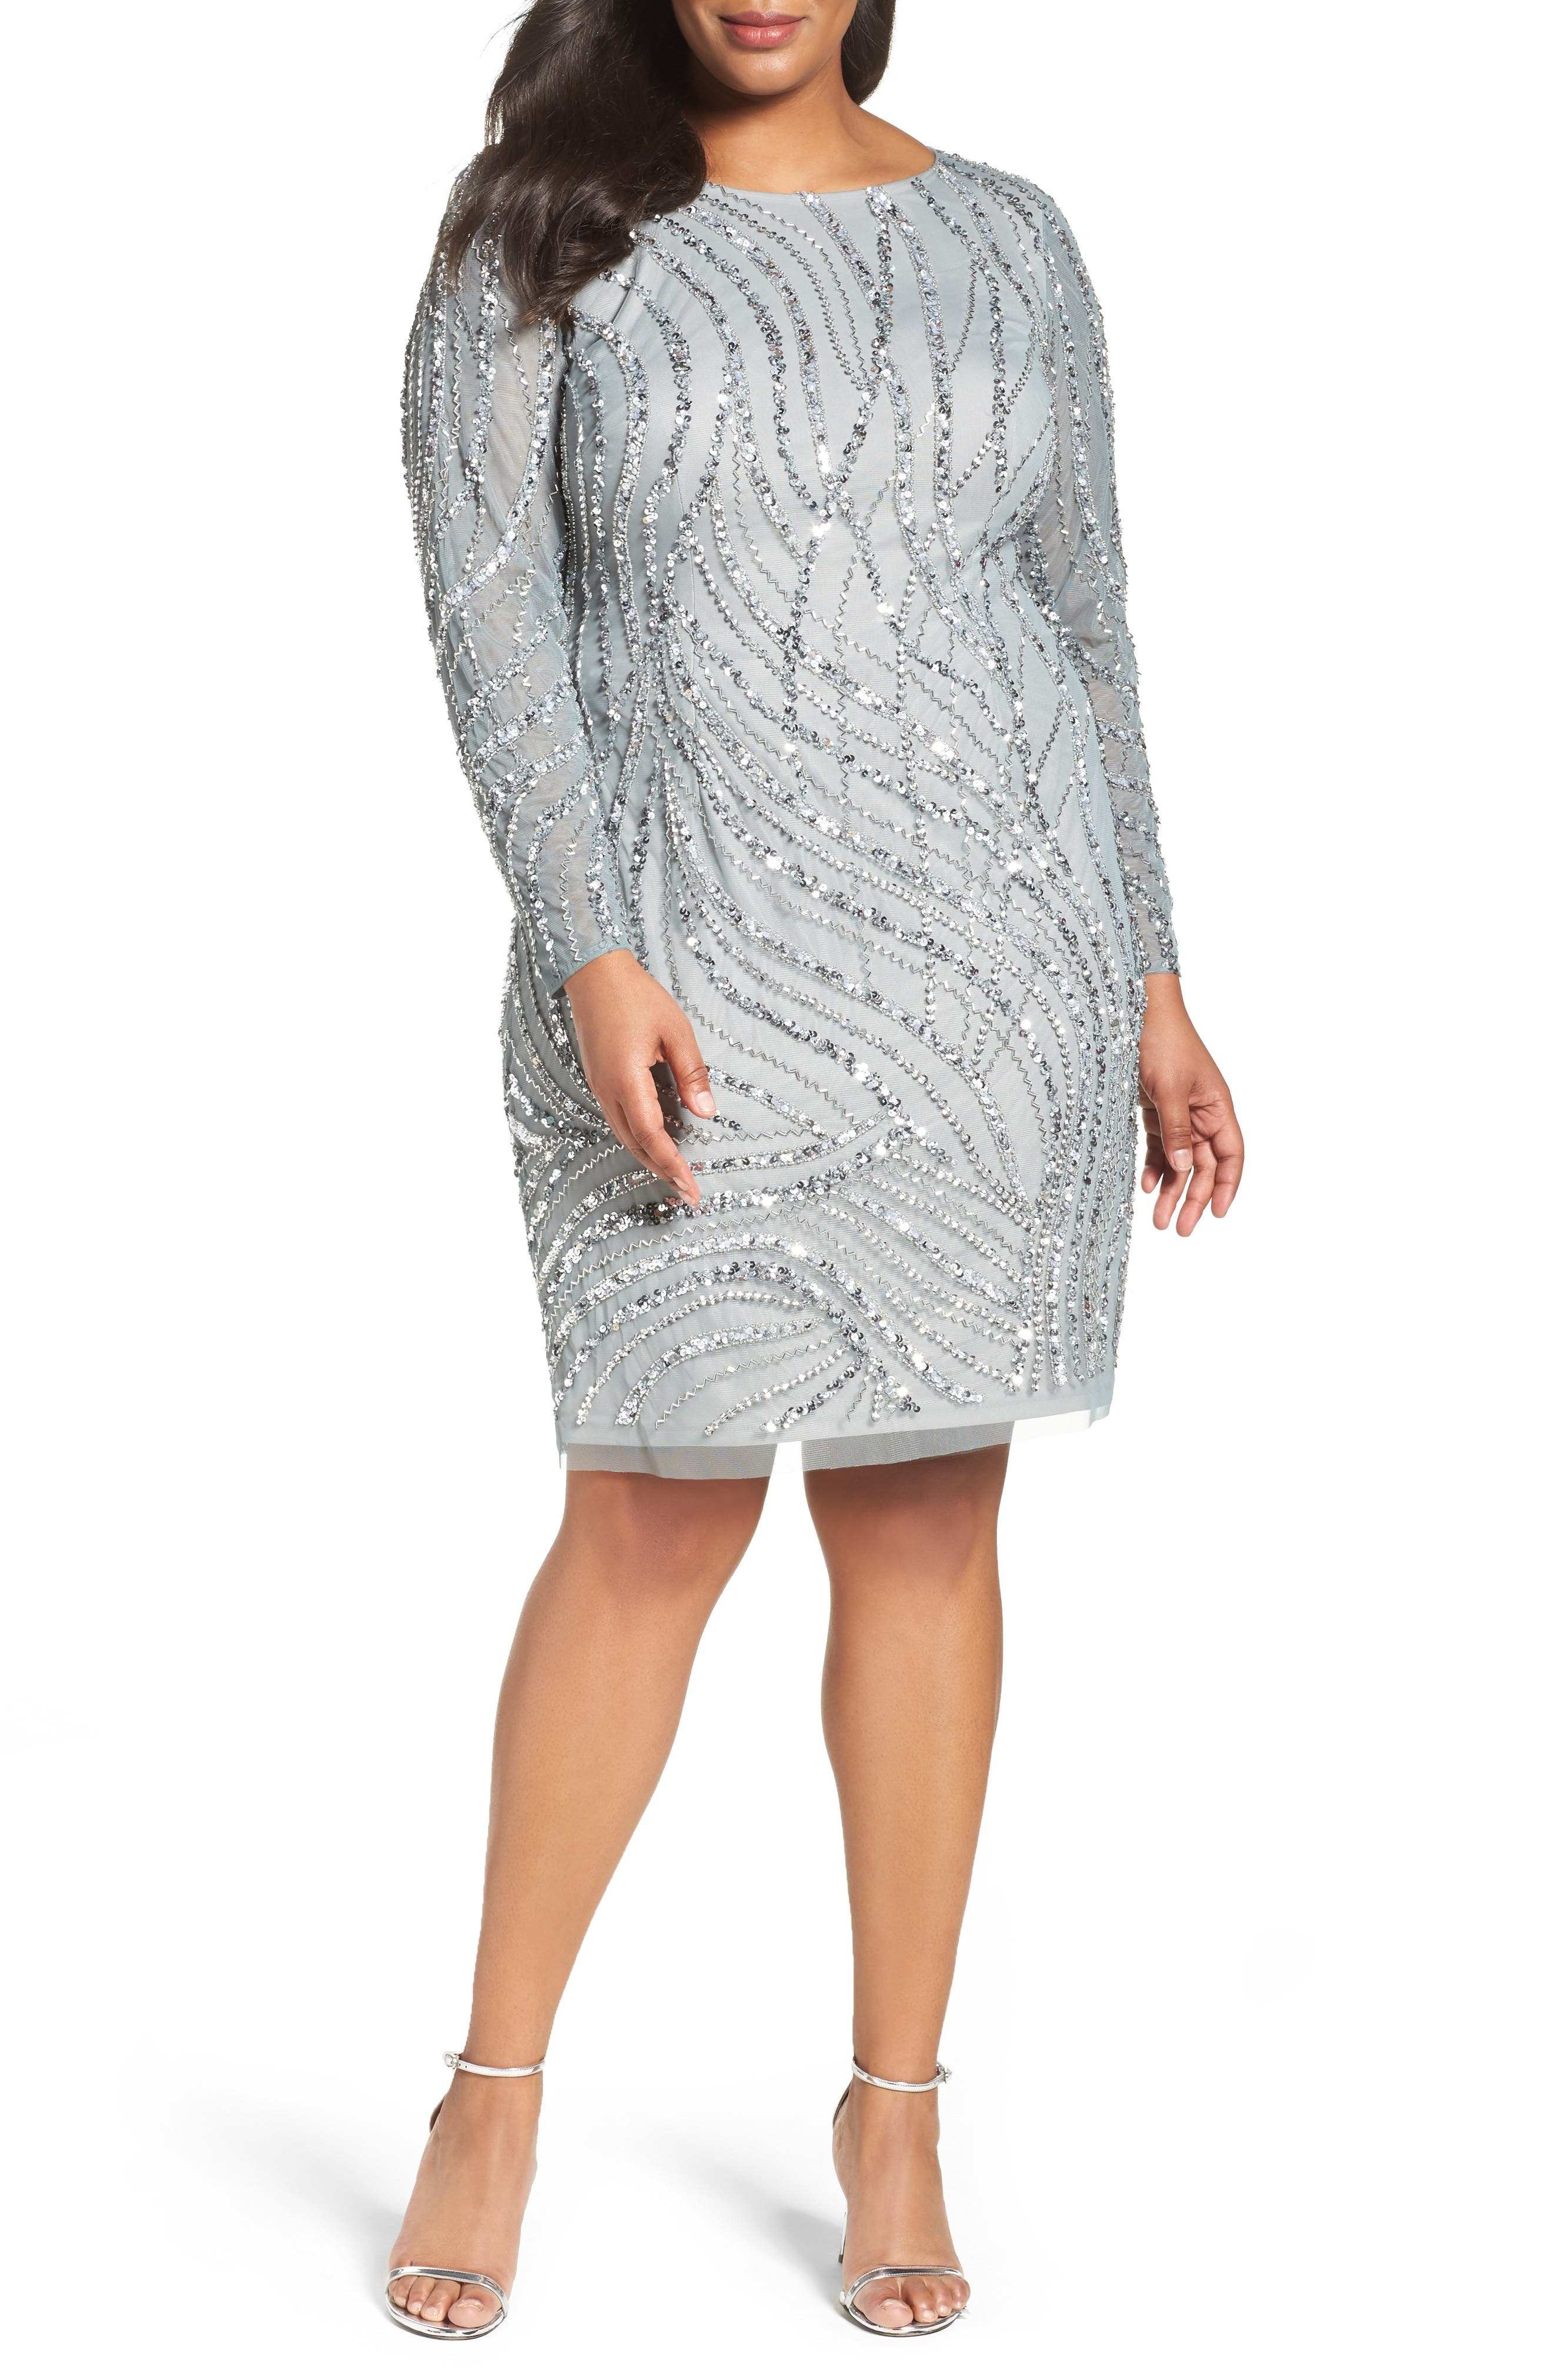 Adrianna Papell Beaded Mesh Sheath Dress (Plus Size)